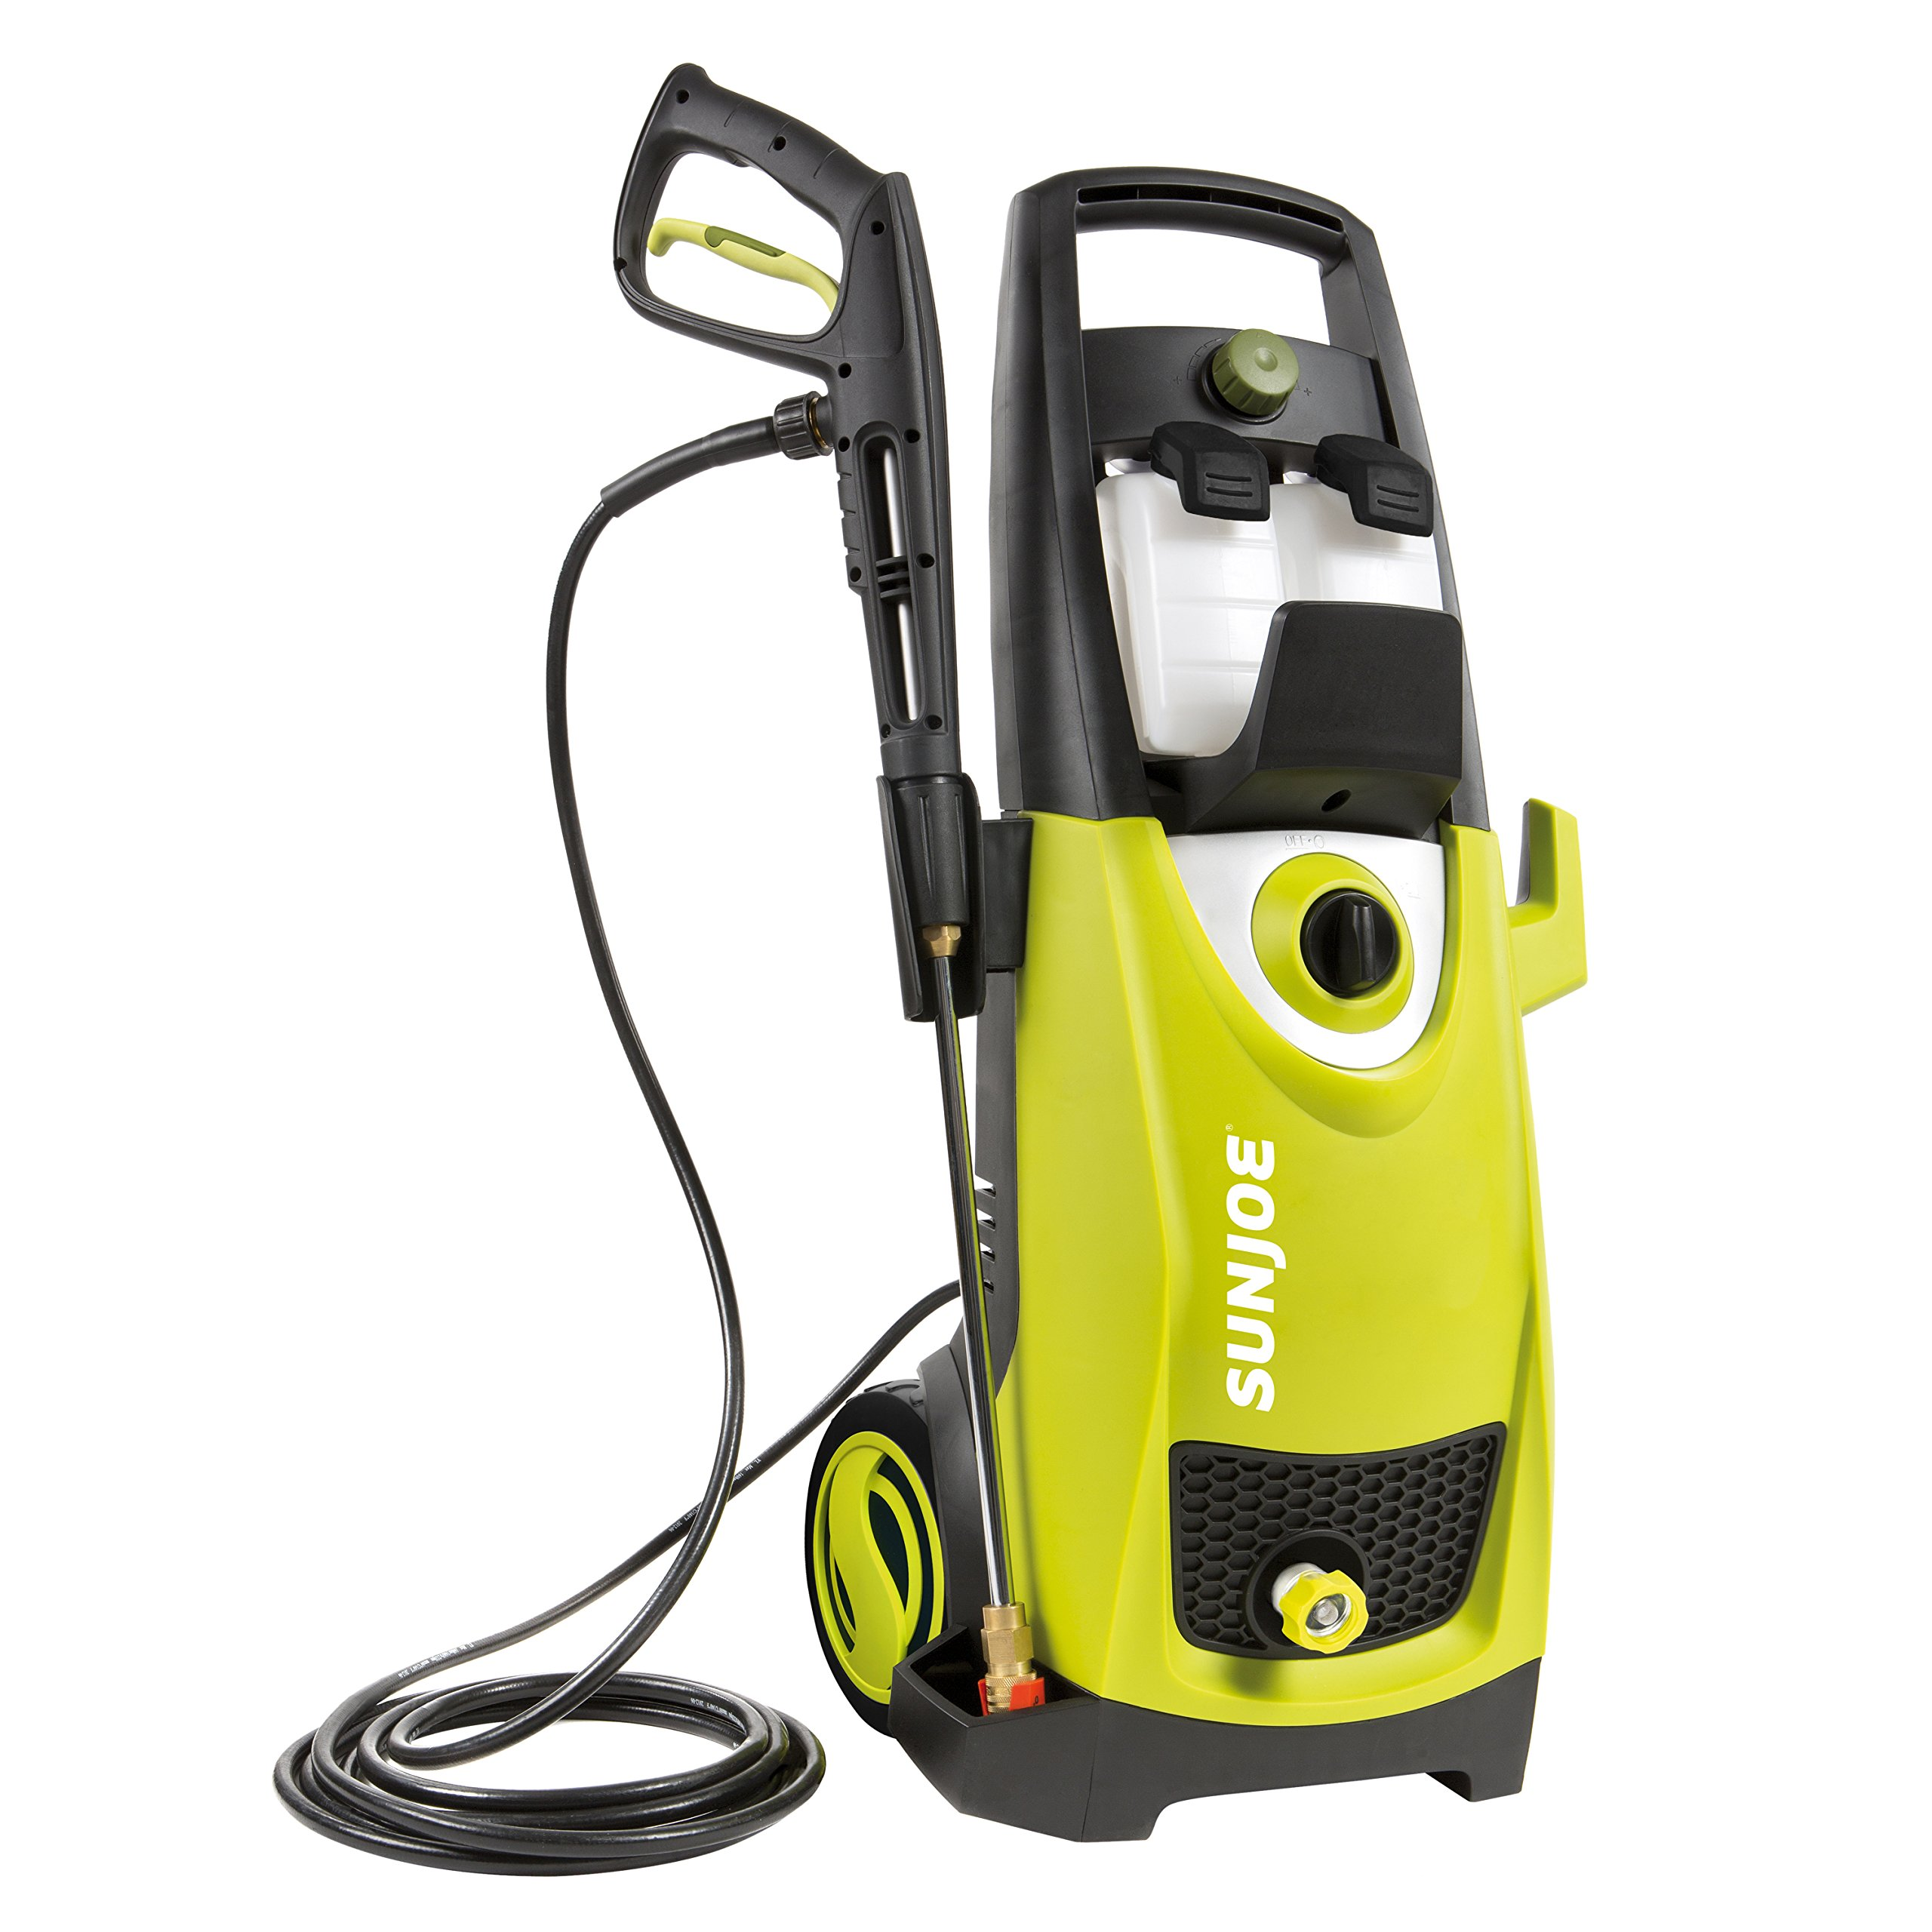 Sun Joe electric pressure washer